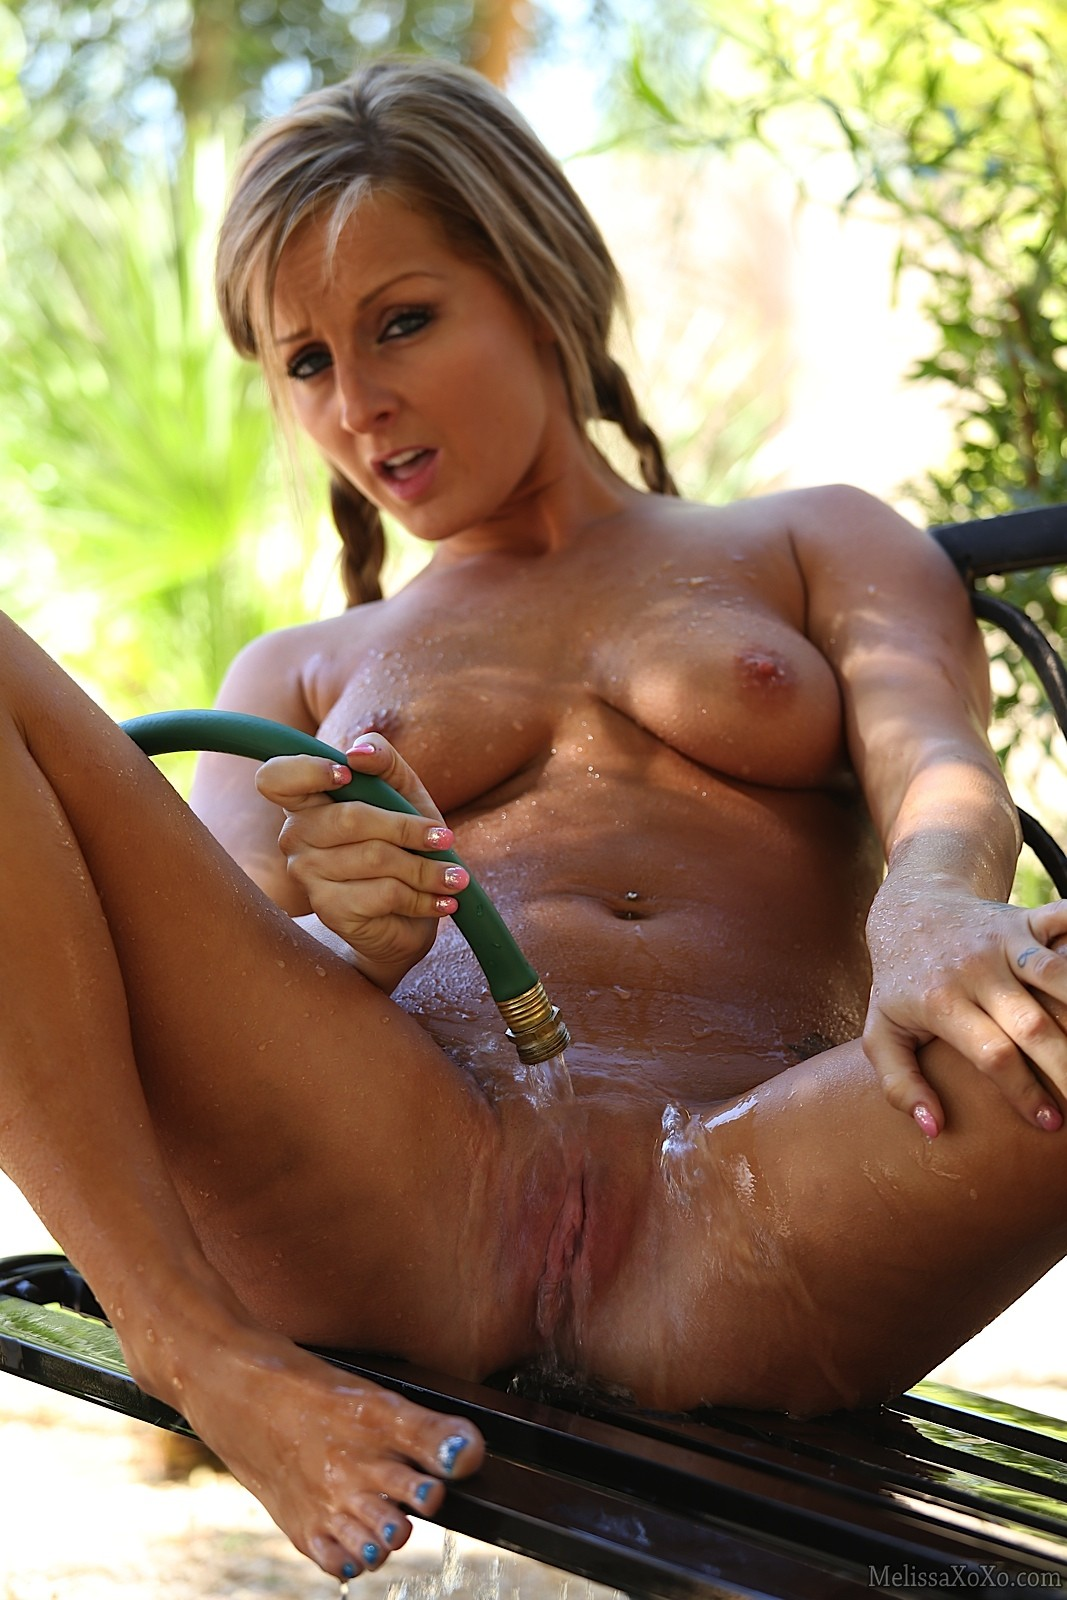 Naked country girl cunt attentively